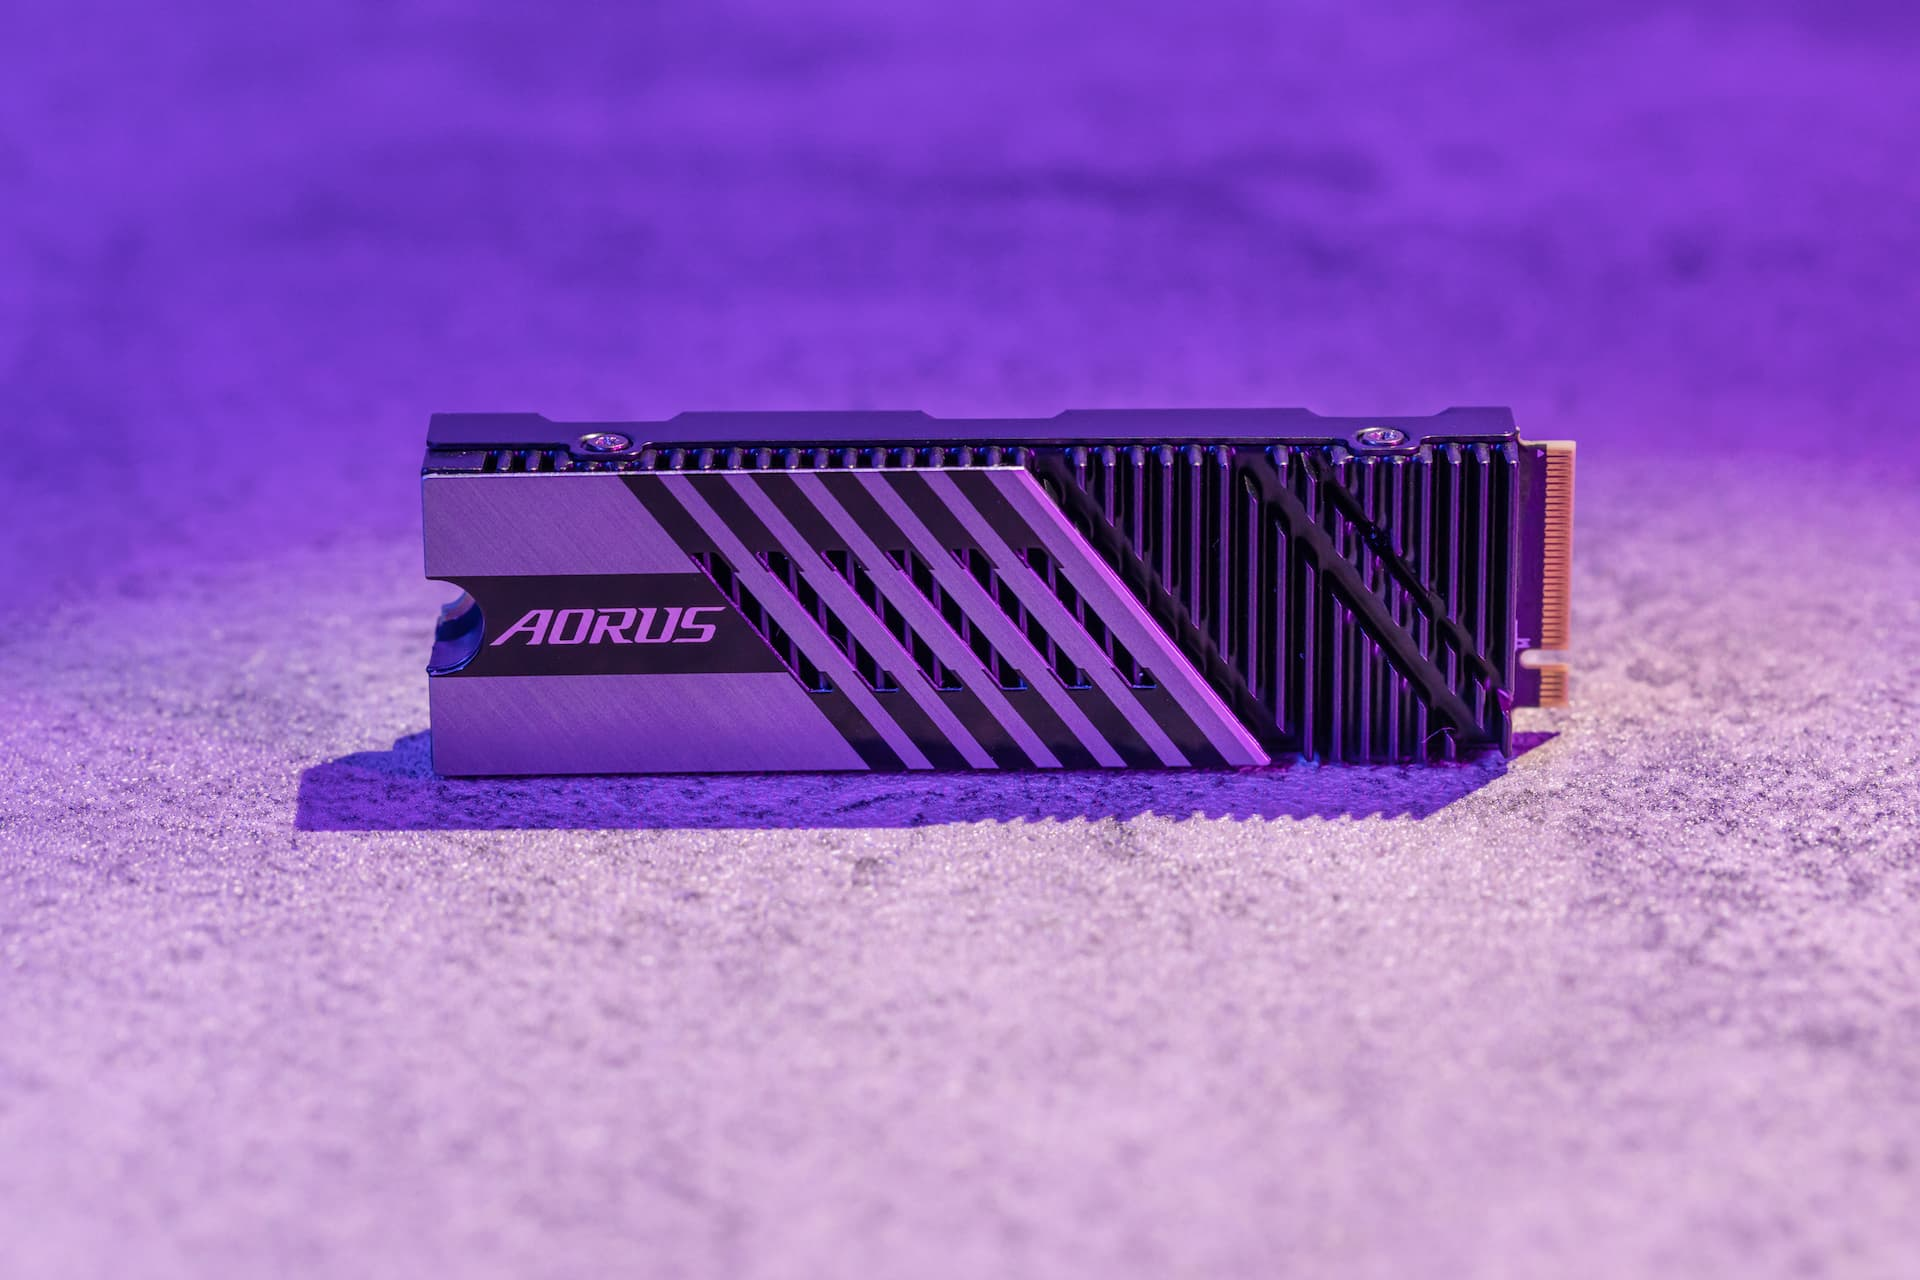 AORUS Gen4 7000s SSD: Top Gen4 SSD Performance